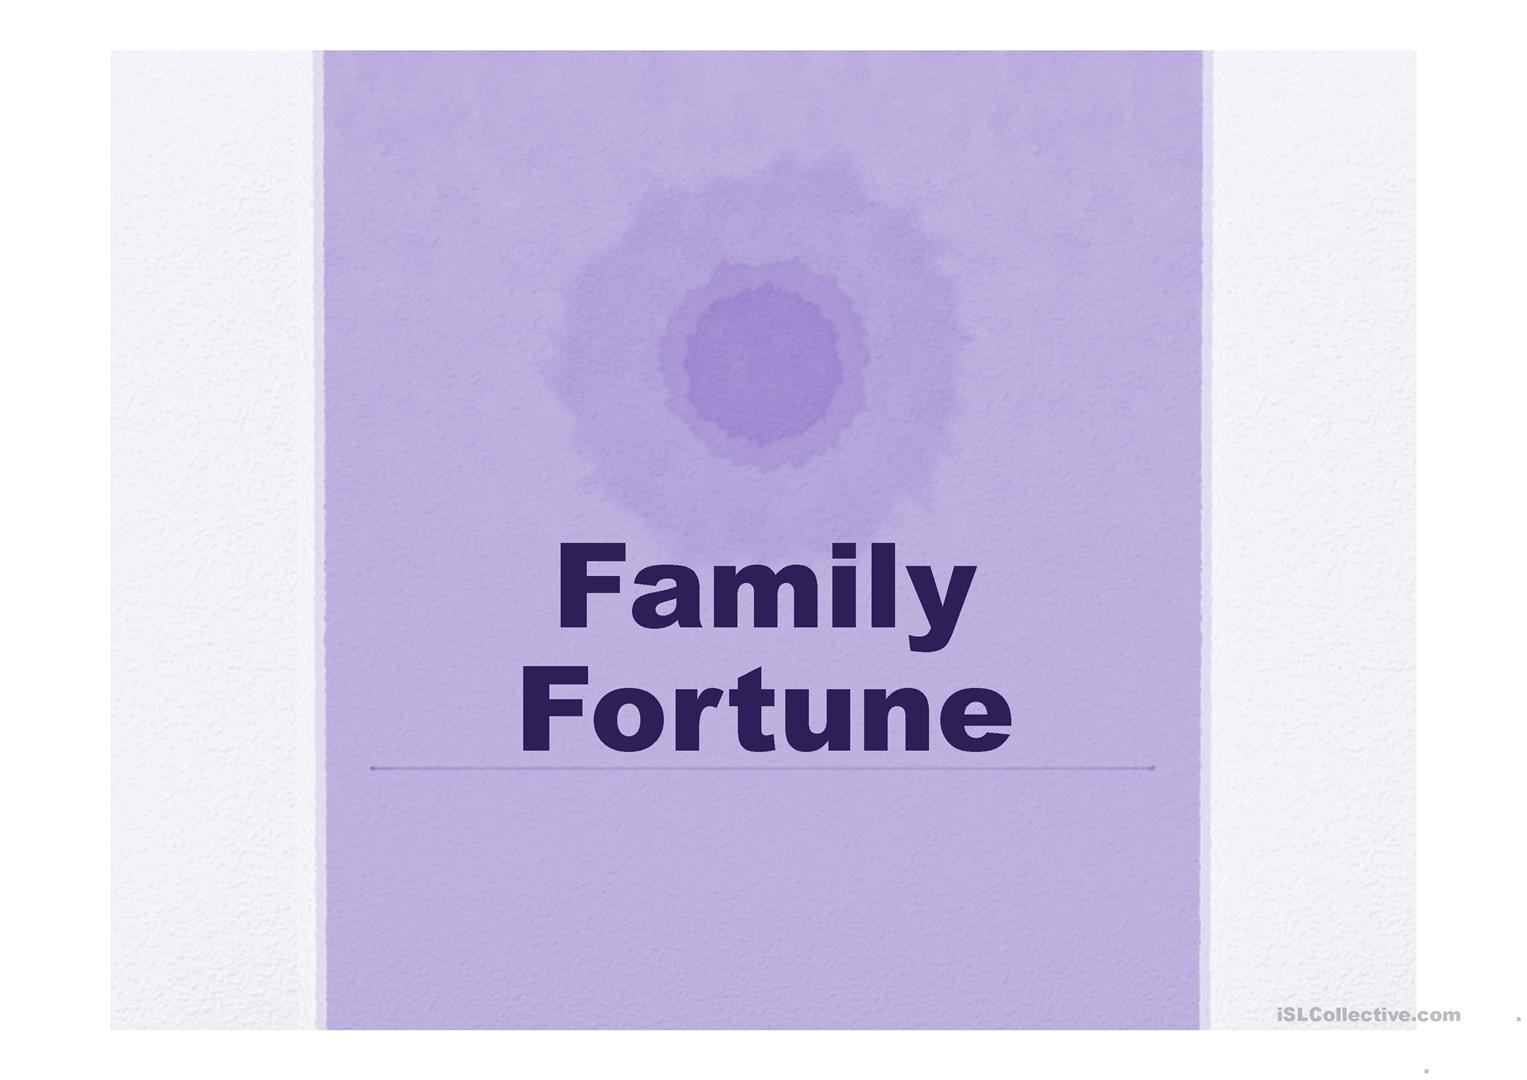 Fun Worksheets For Adults : Family fortune ppt worksheet free esl projectable worksheets made